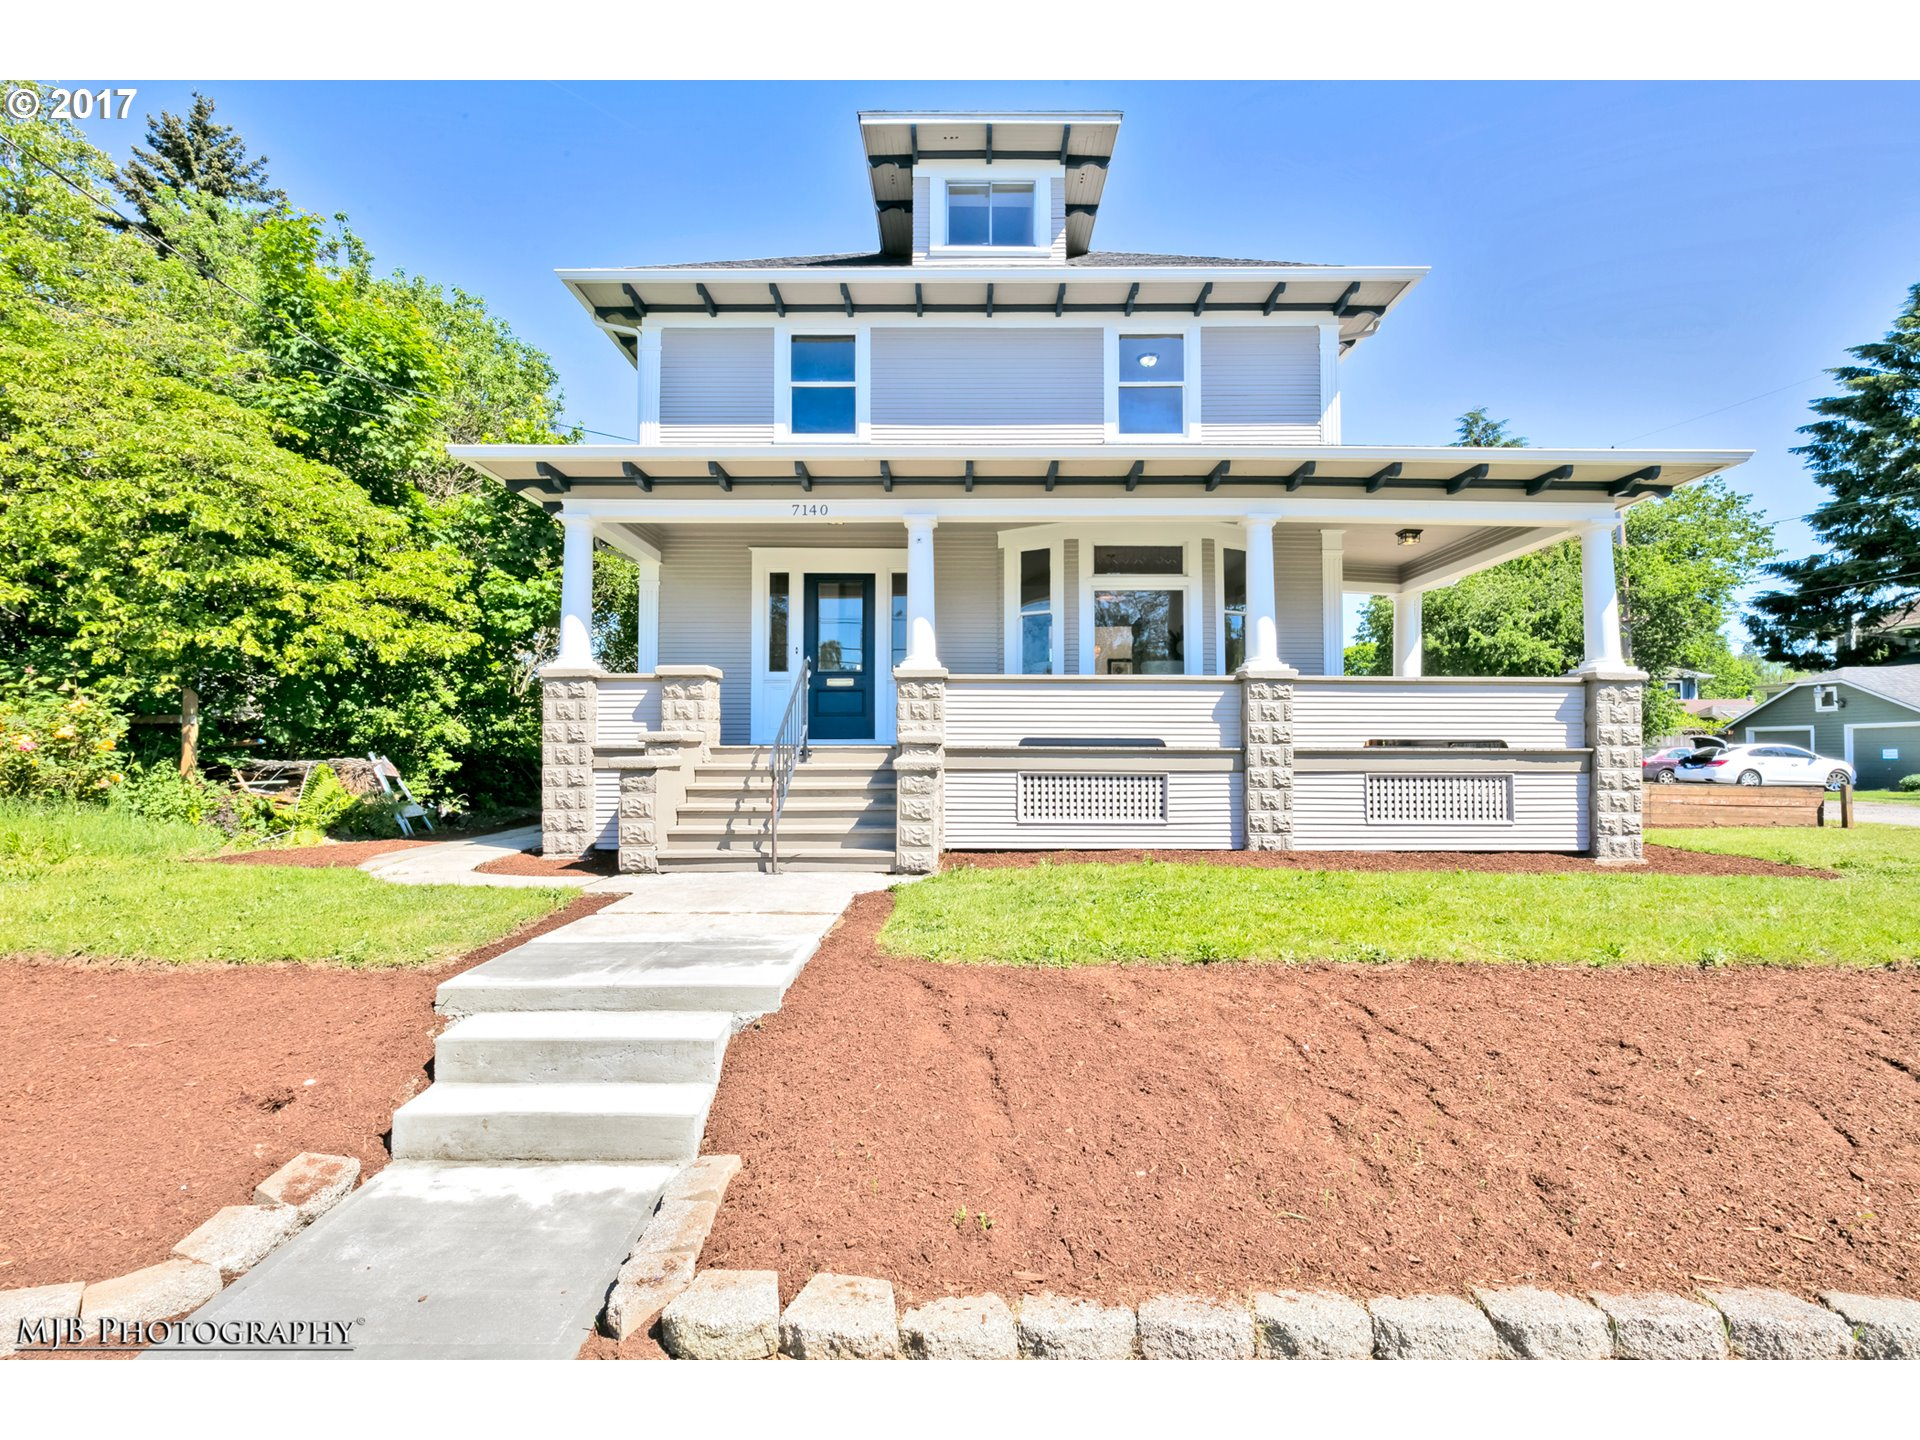 Classic Old-PDX style home in pop University Park neighborhd!  Move-in ready! All new designer int/ext paint, charming & huge covered wrap around porch, 4 levels of spacious living, finished basement, vaulted attic space, entertainers kitchen w/SS apps, built-ins, hi-ceilings thru-out, plenty of natural lites, remod bthrm, AC.  Near shops, parks, cafes, & walk-able tree-lined streets! Hurry, won't last at this price and location!